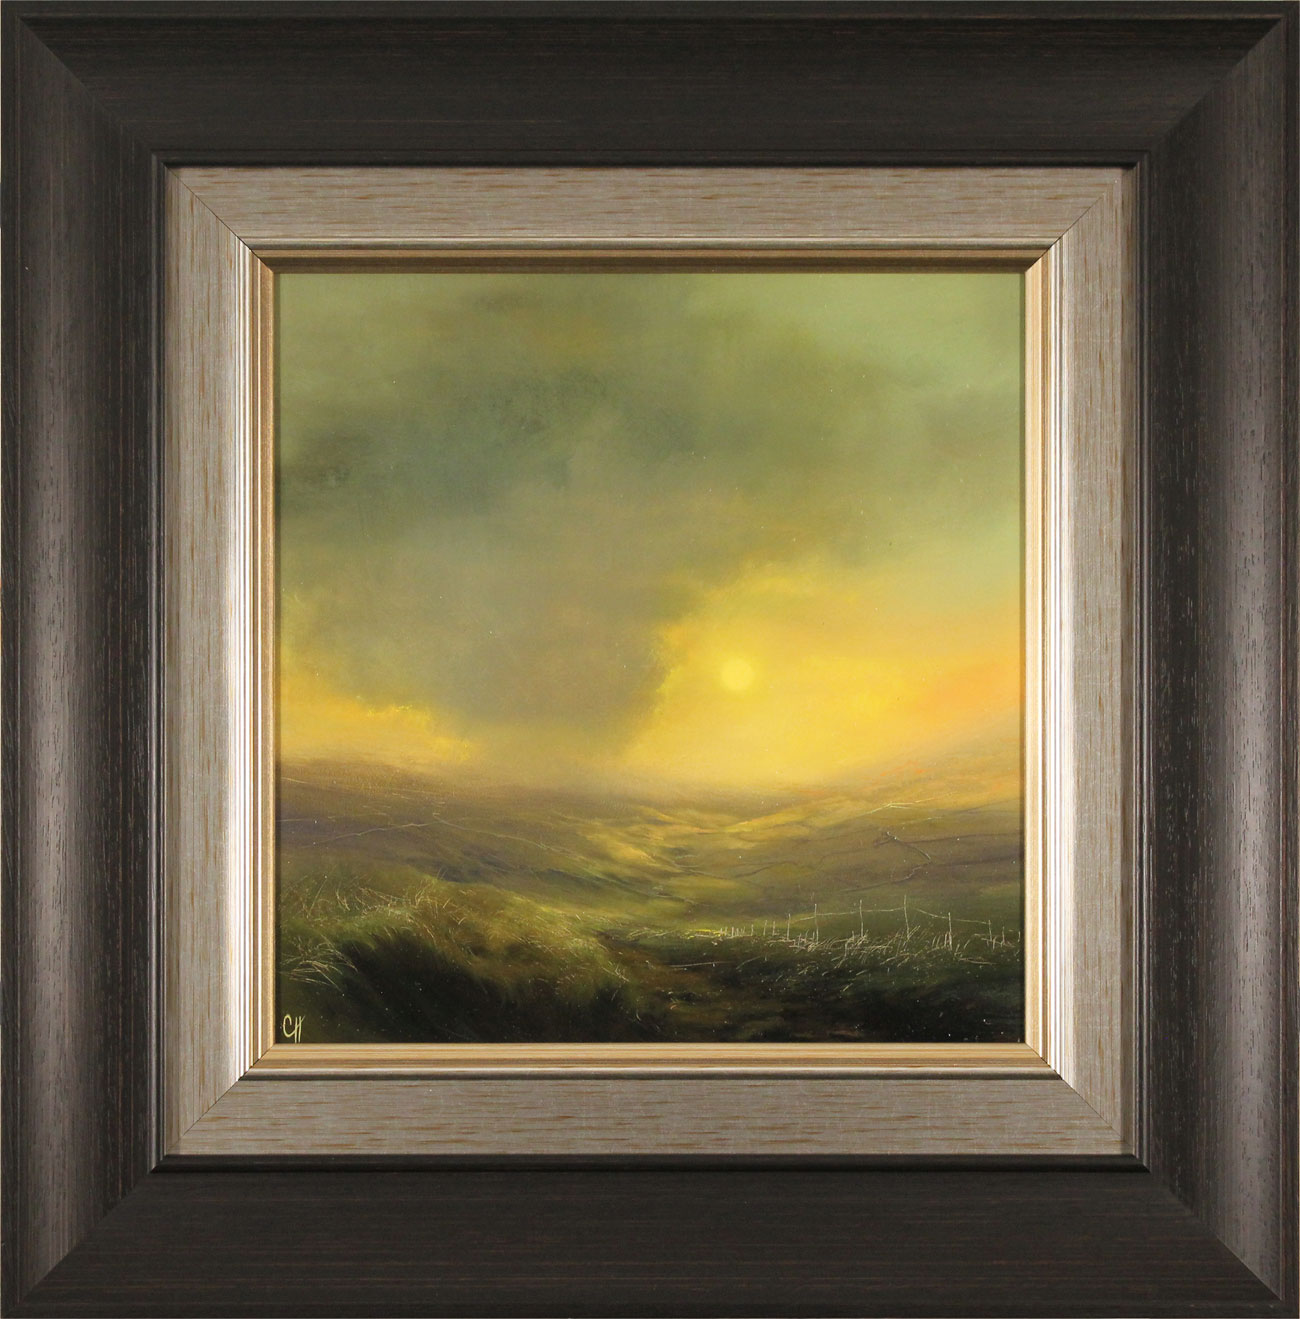 Clare Haley, Original oil painting on panel, Warmth in the Air Click to enlarge